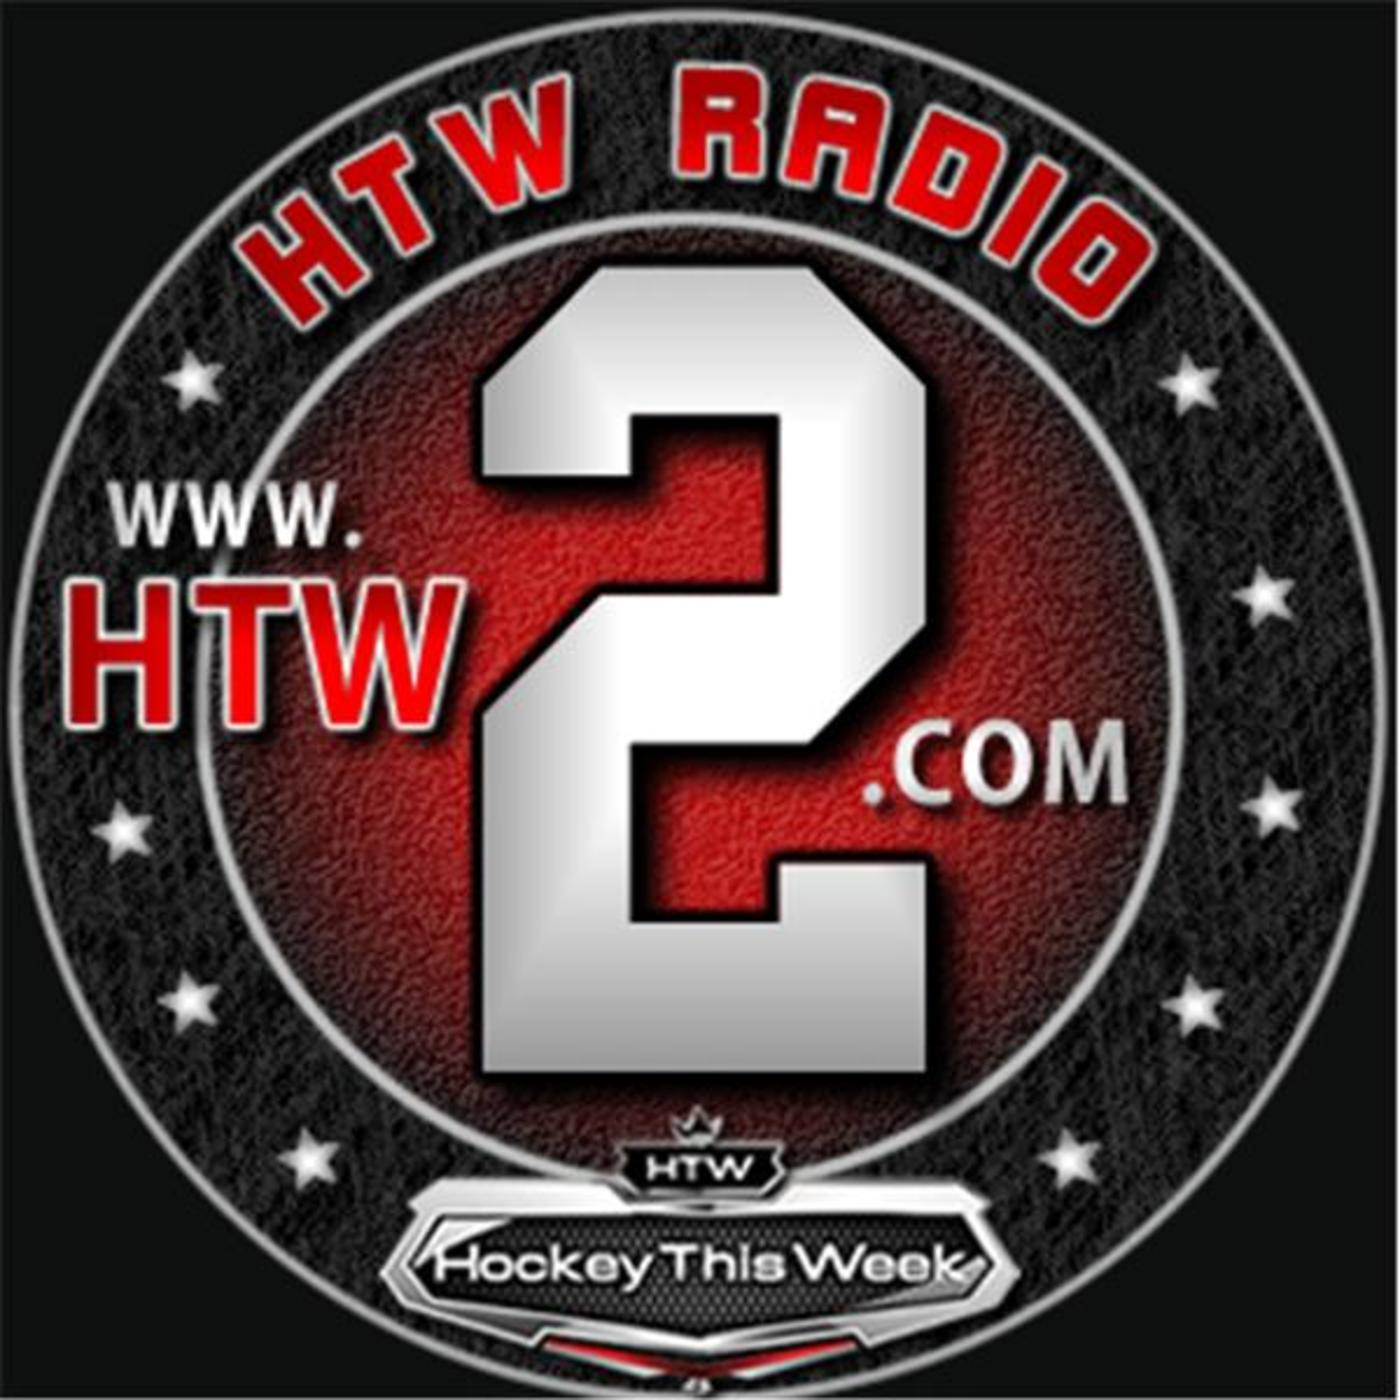 HTW2 - Hockey This Week Radio Network